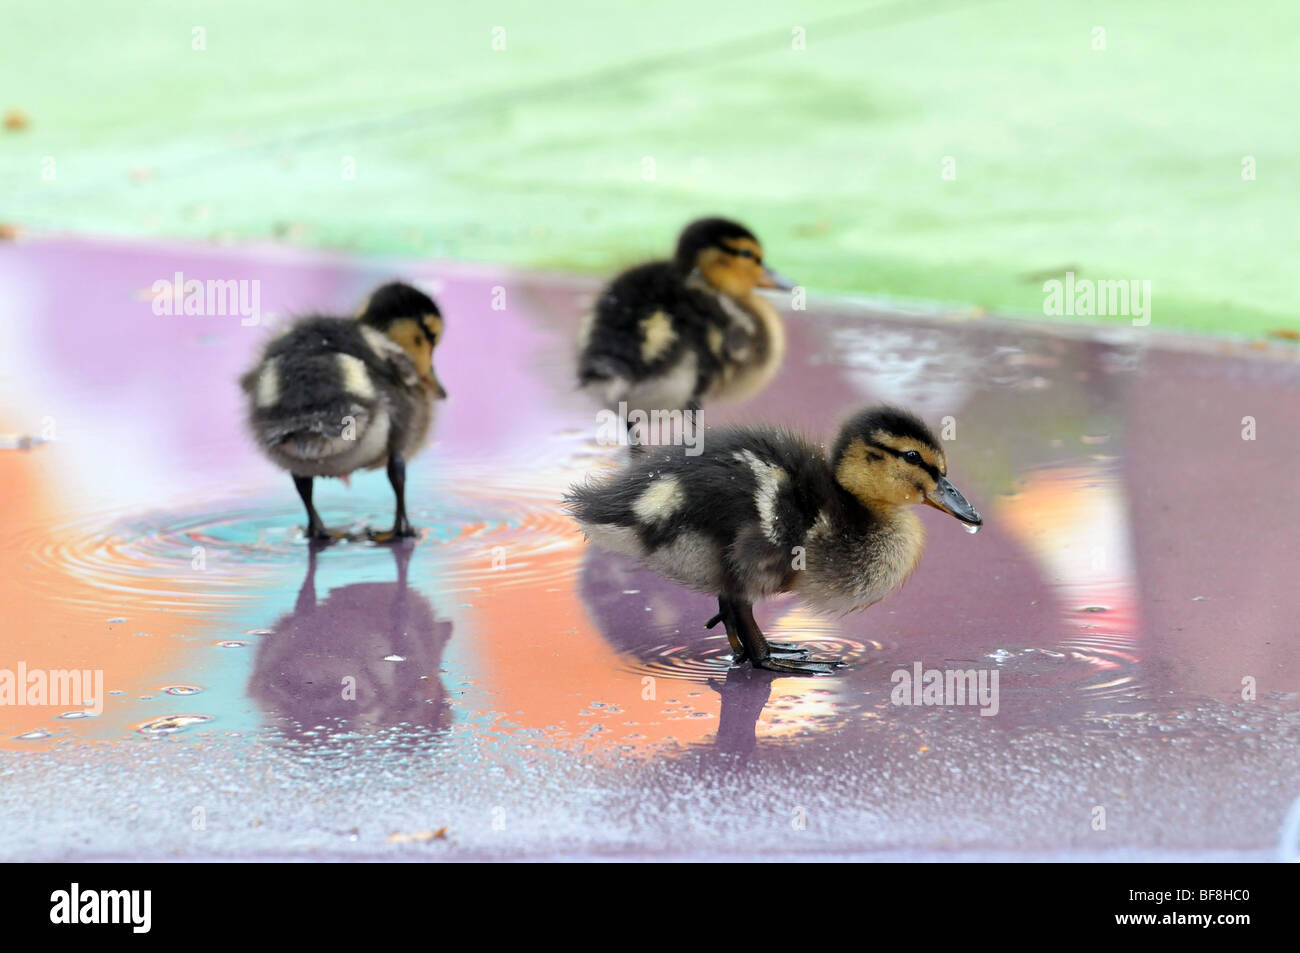 Young Mallard ducklings playing in shallow water - Stock Image